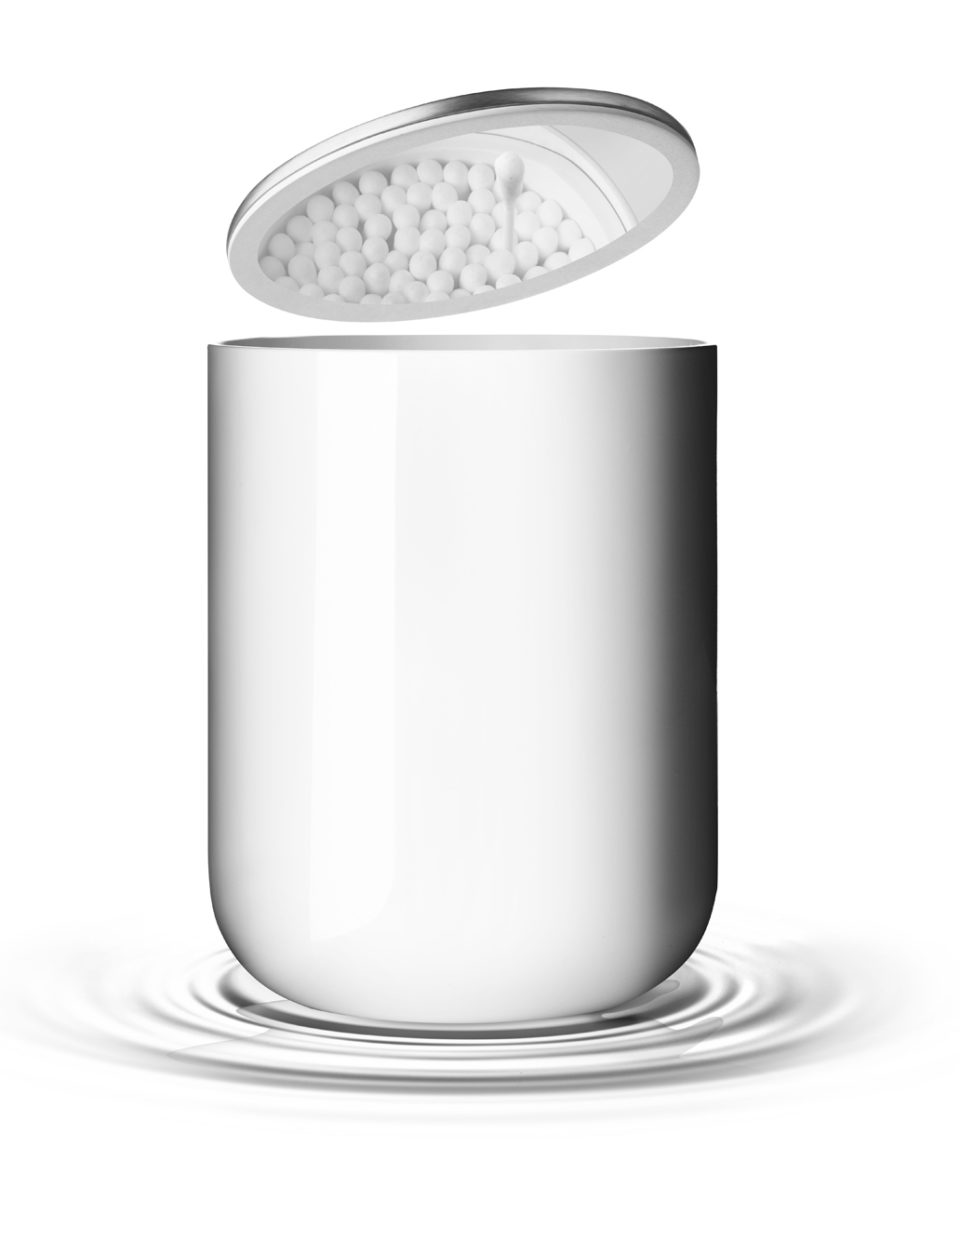 Bath Container by Norm Architects for Menu, in White-20194